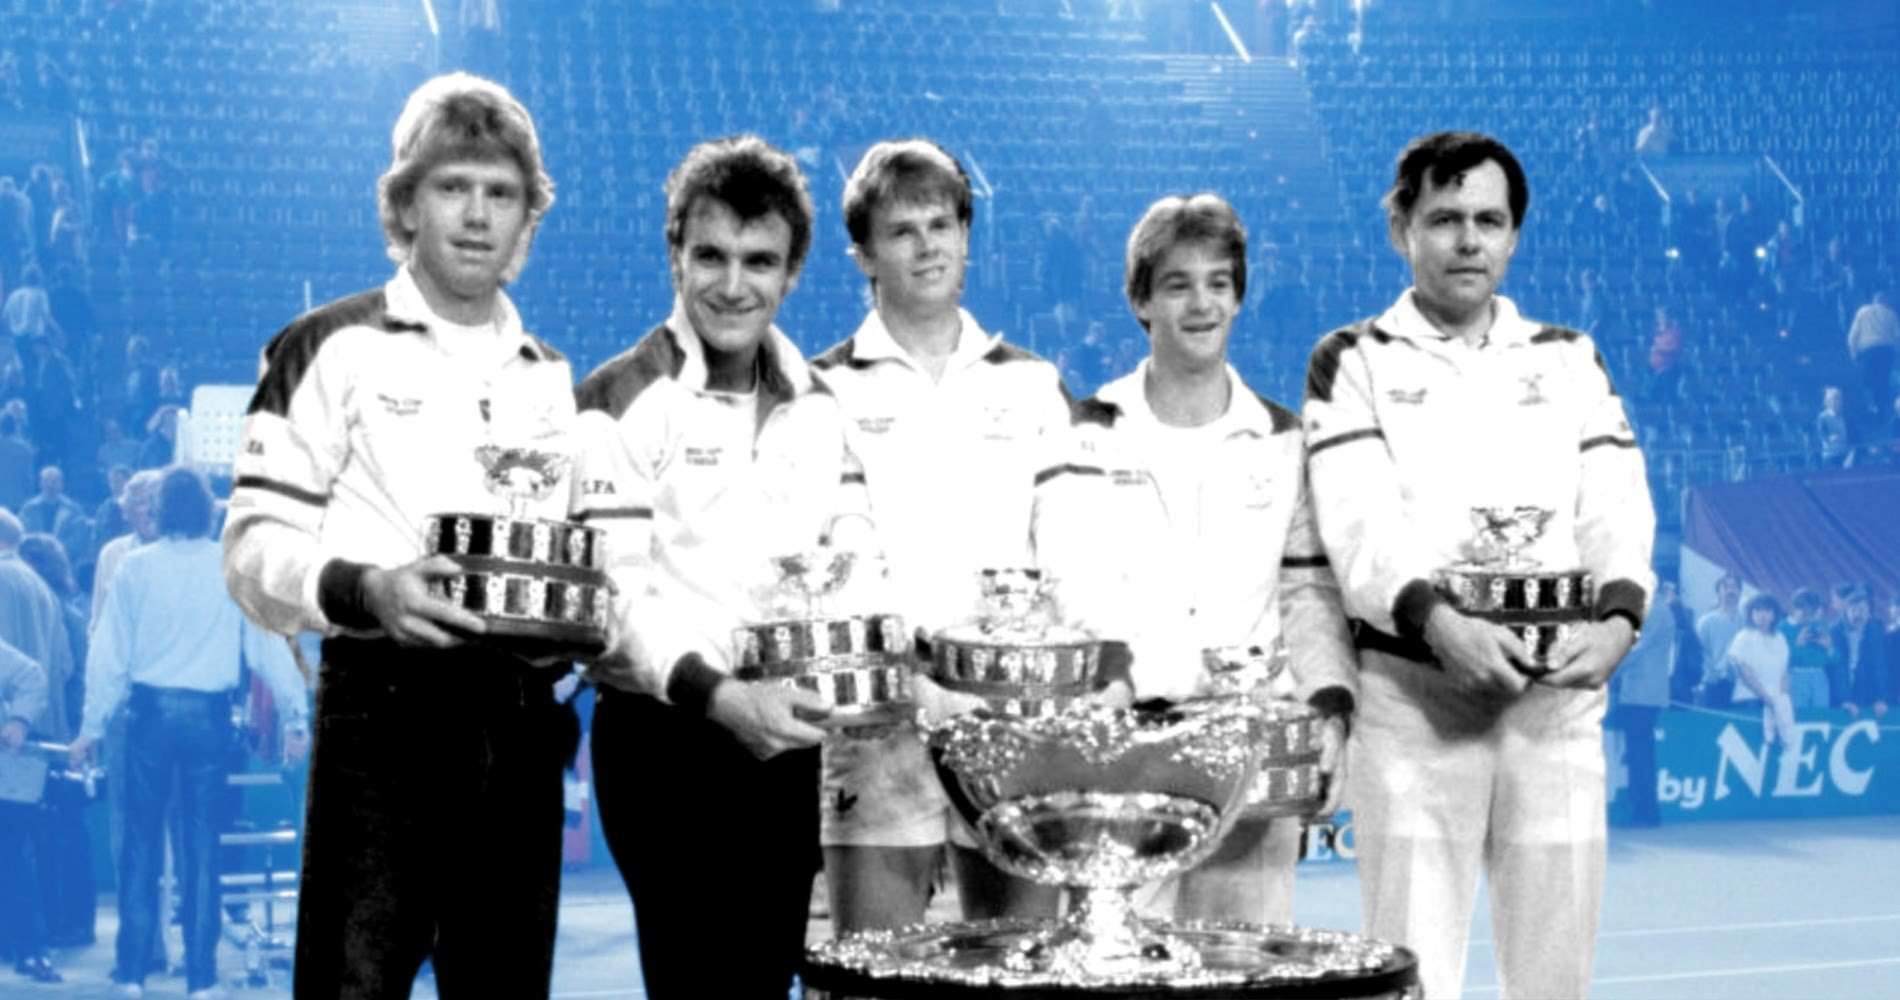 Sweden On this Day Davis Cup 1987